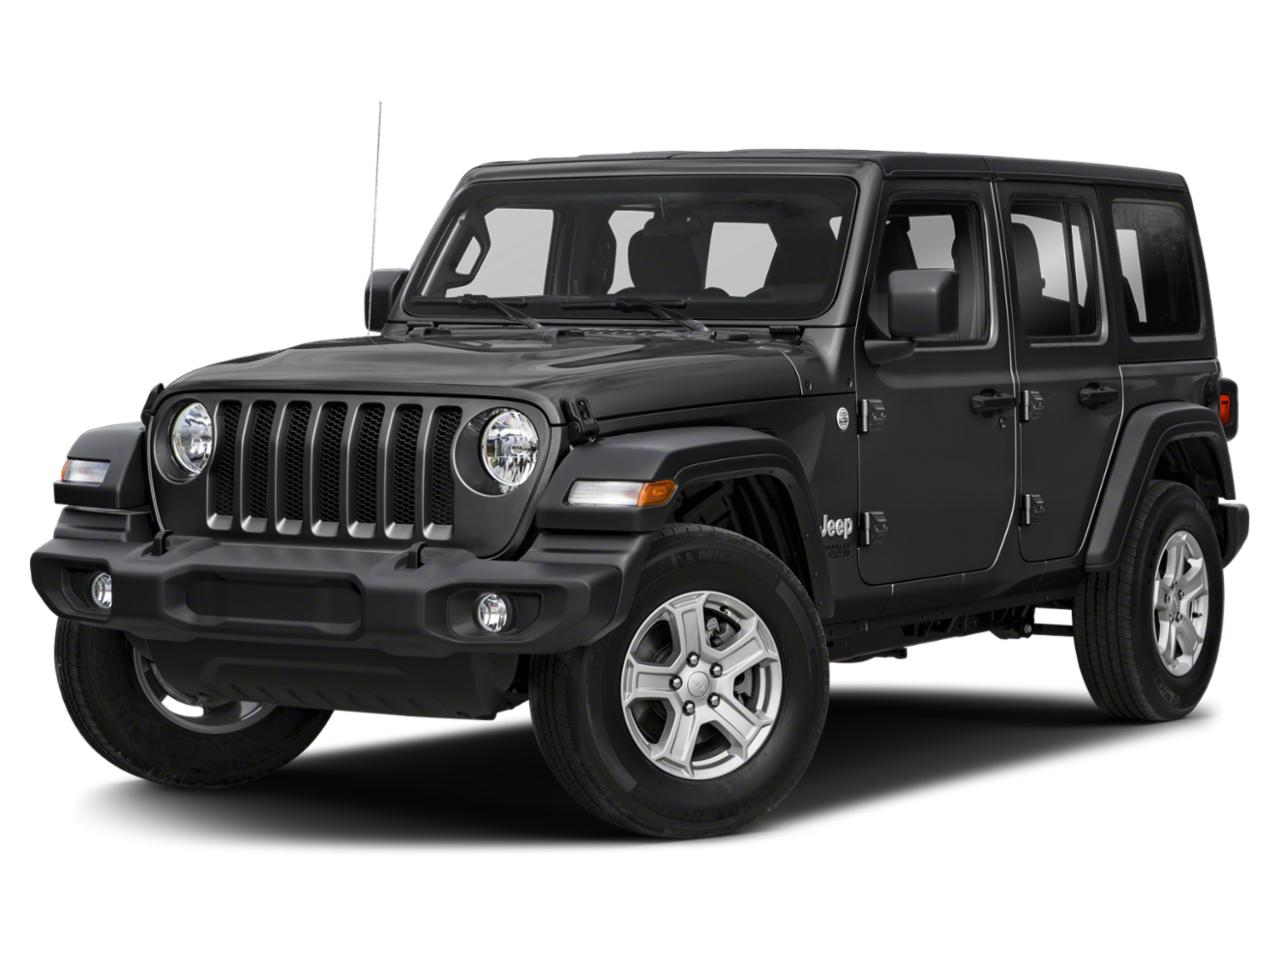 2020 Jeep Wrangler UNLIMITED RUBICON Convertible Slide